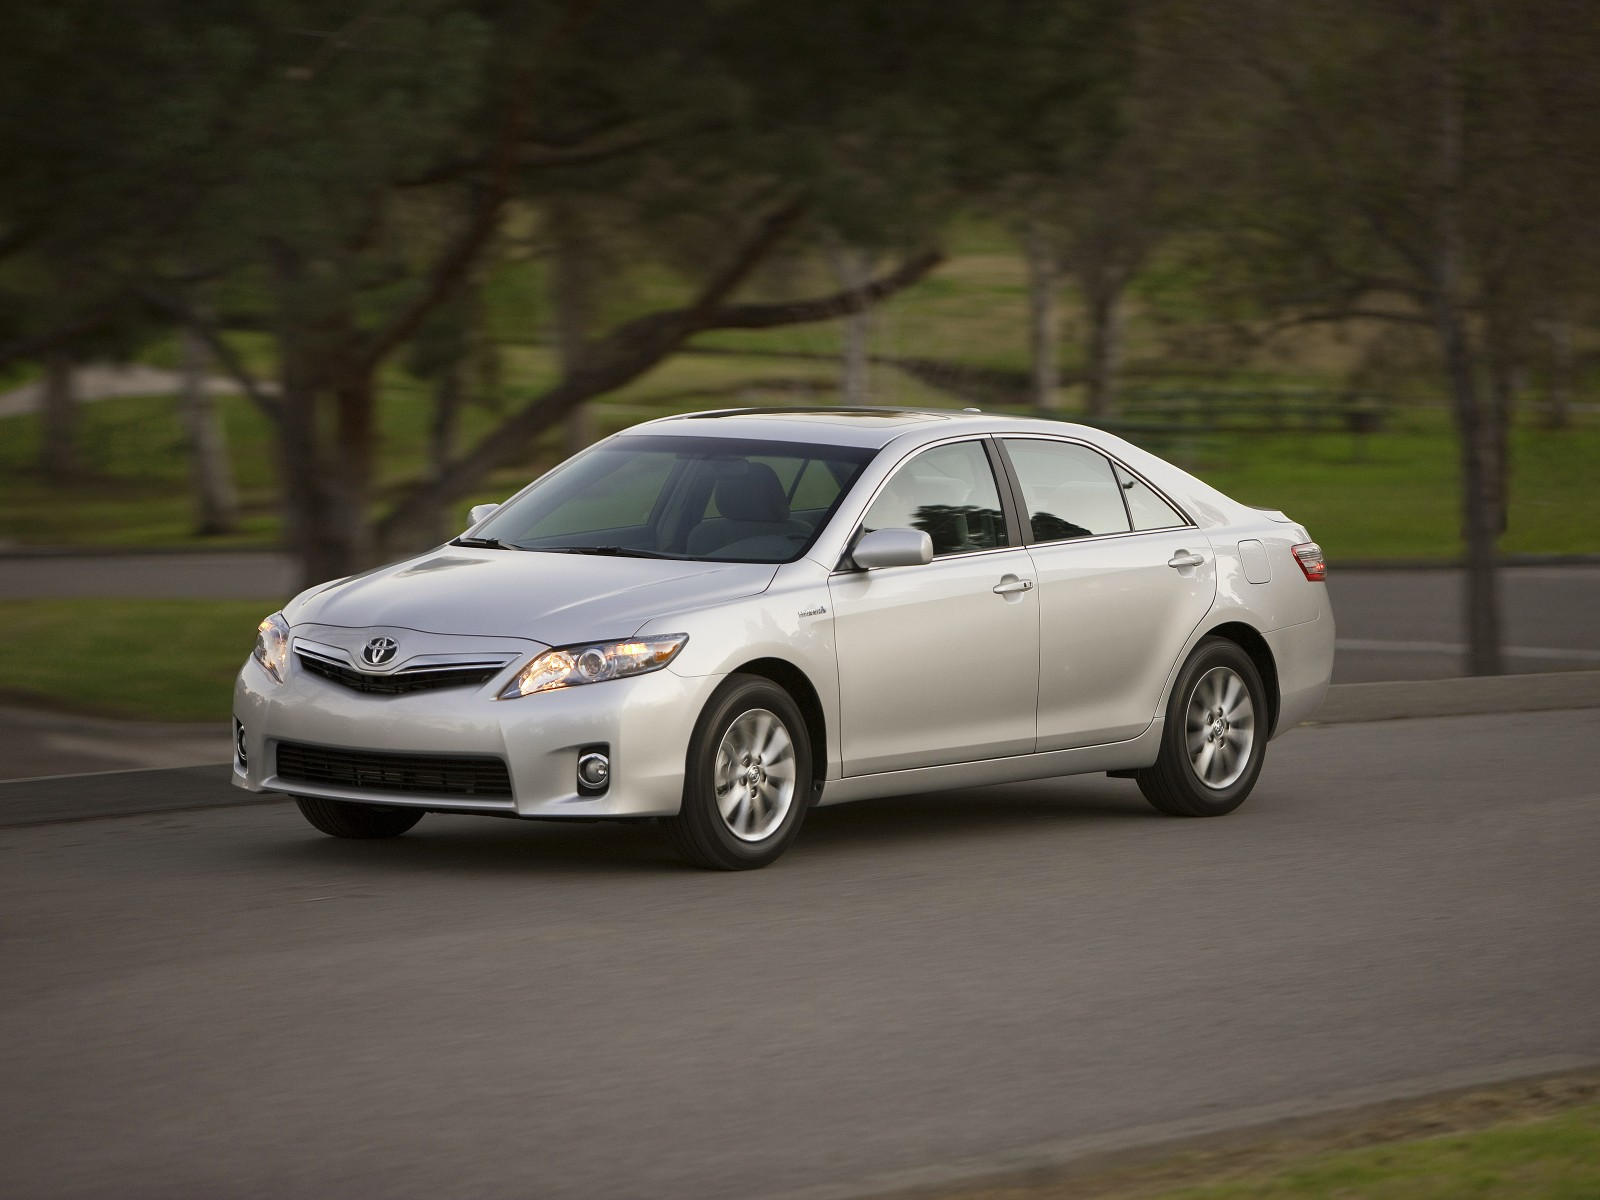 2010 toyota camry hybrid pictures. Black Bedroom Furniture Sets. Home Design Ideas